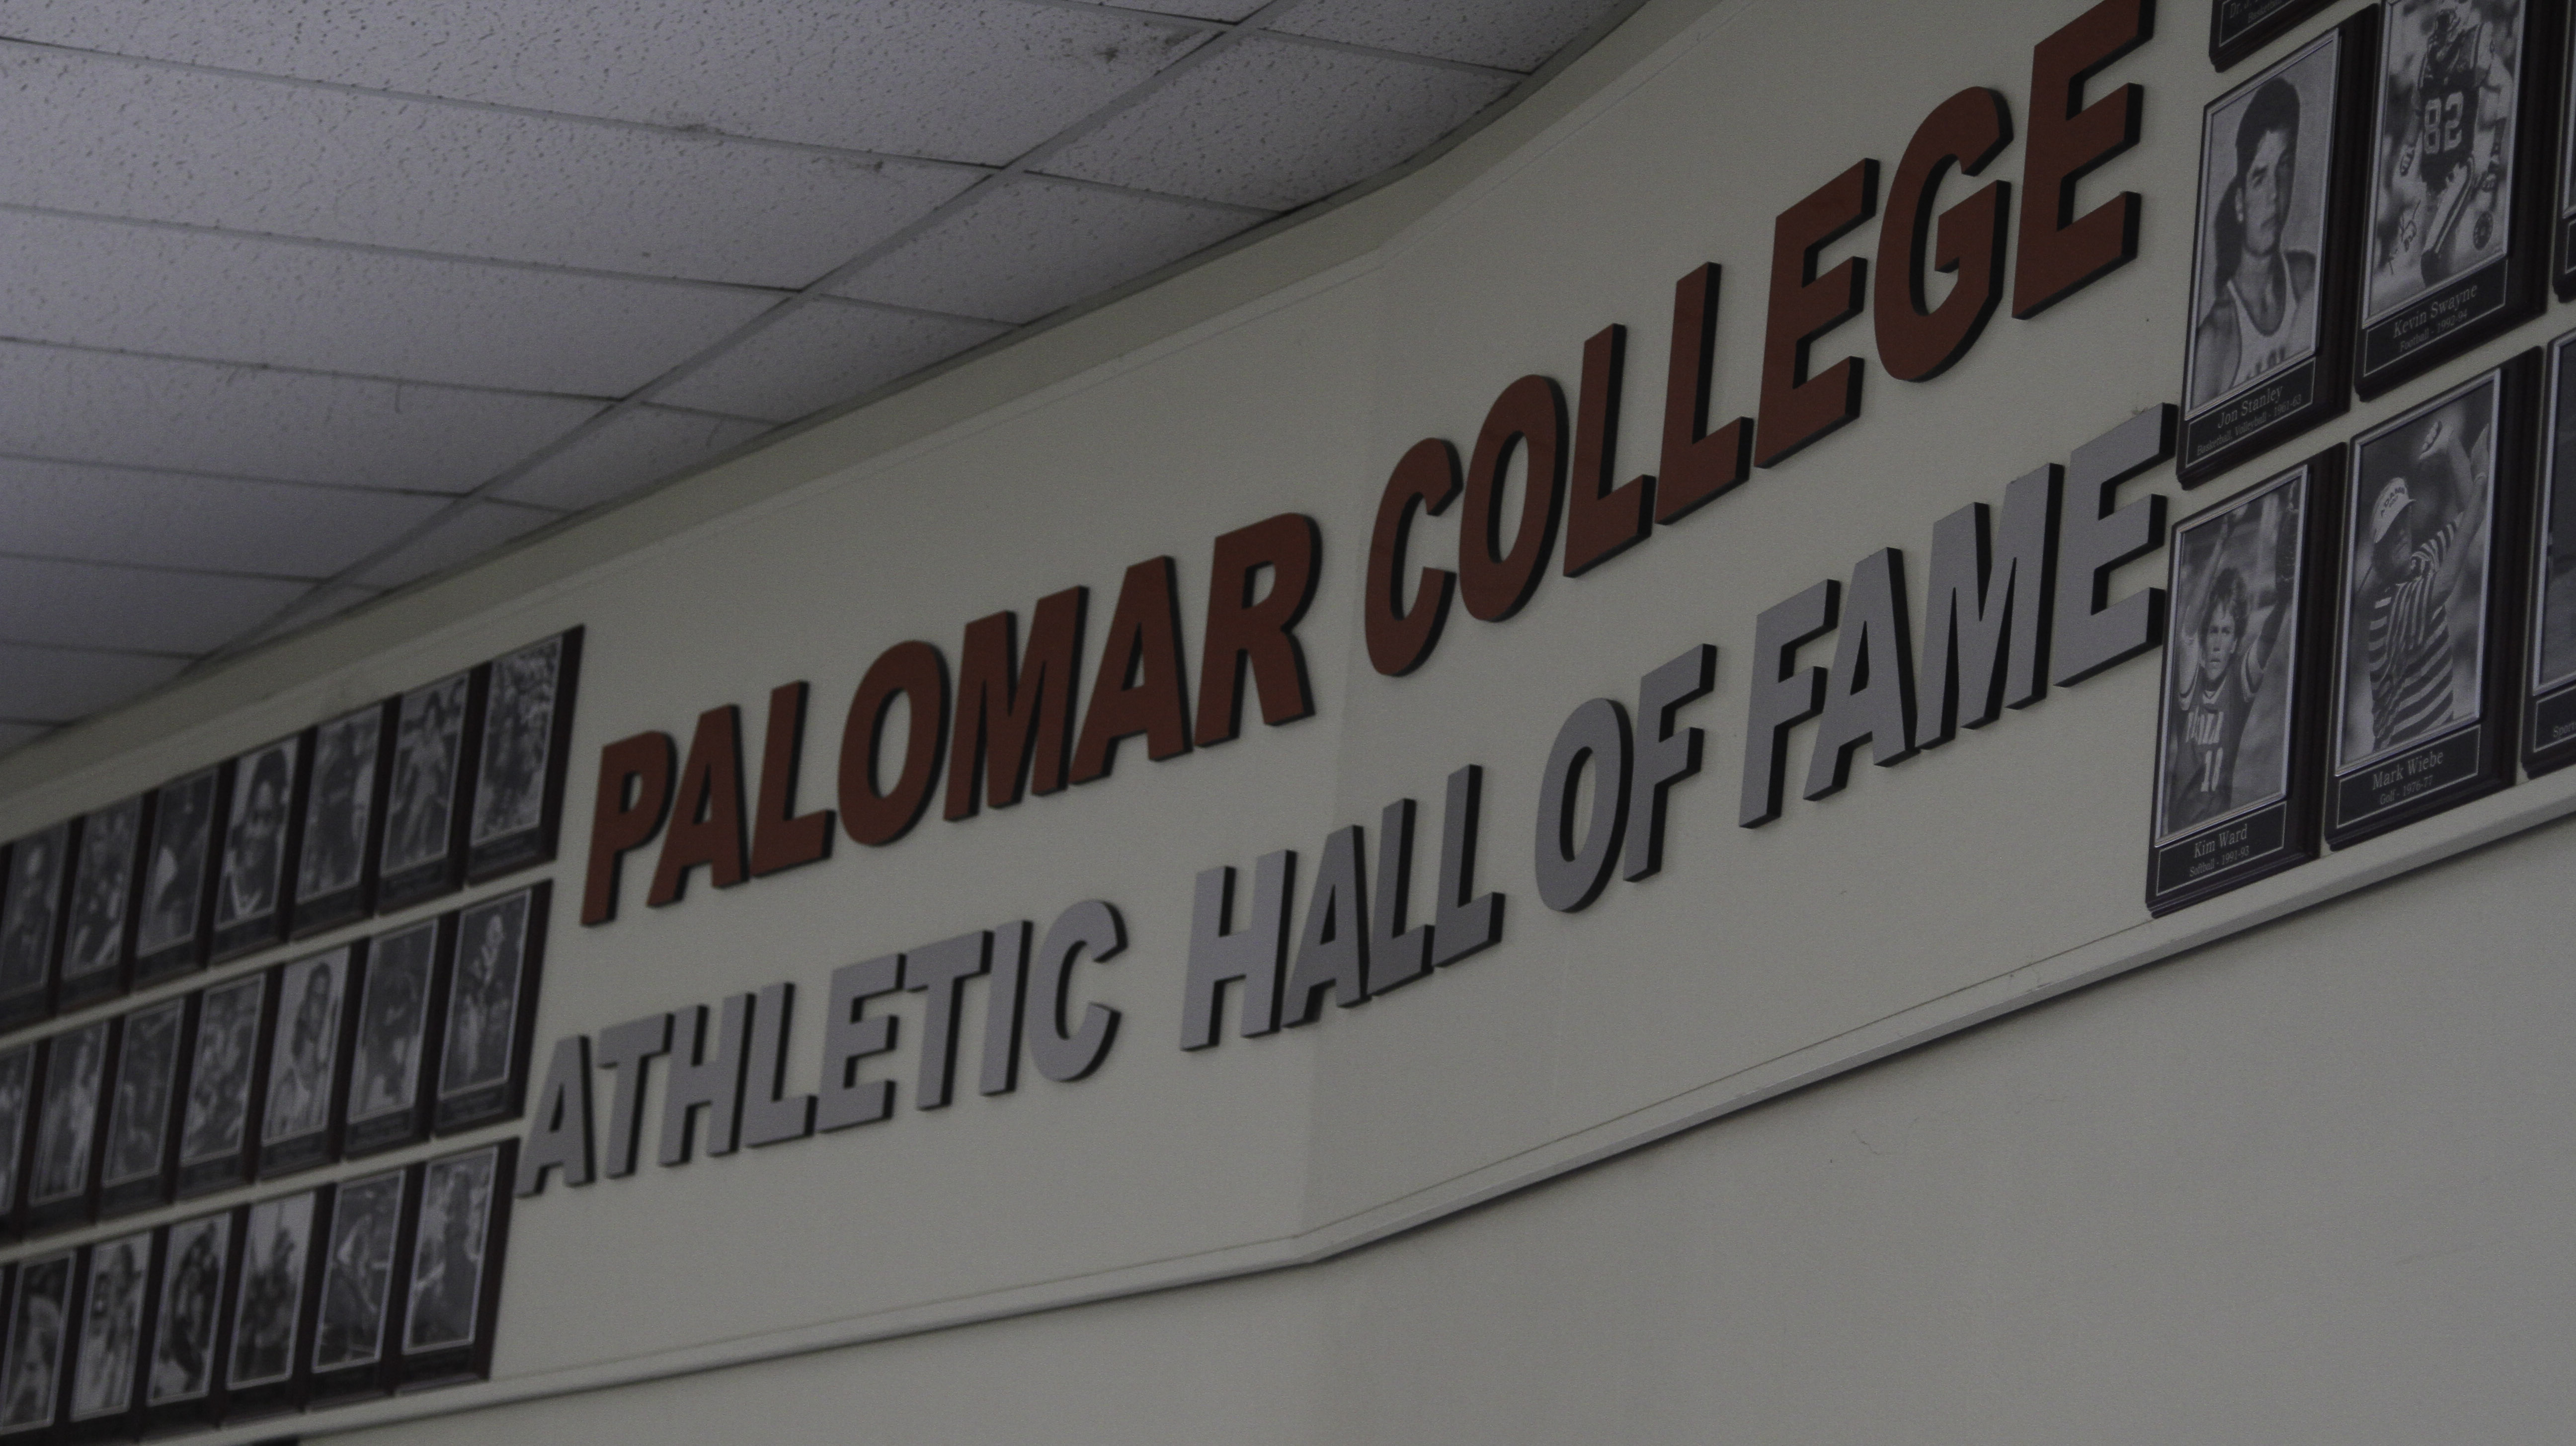 Palomar athletic Hall of fame